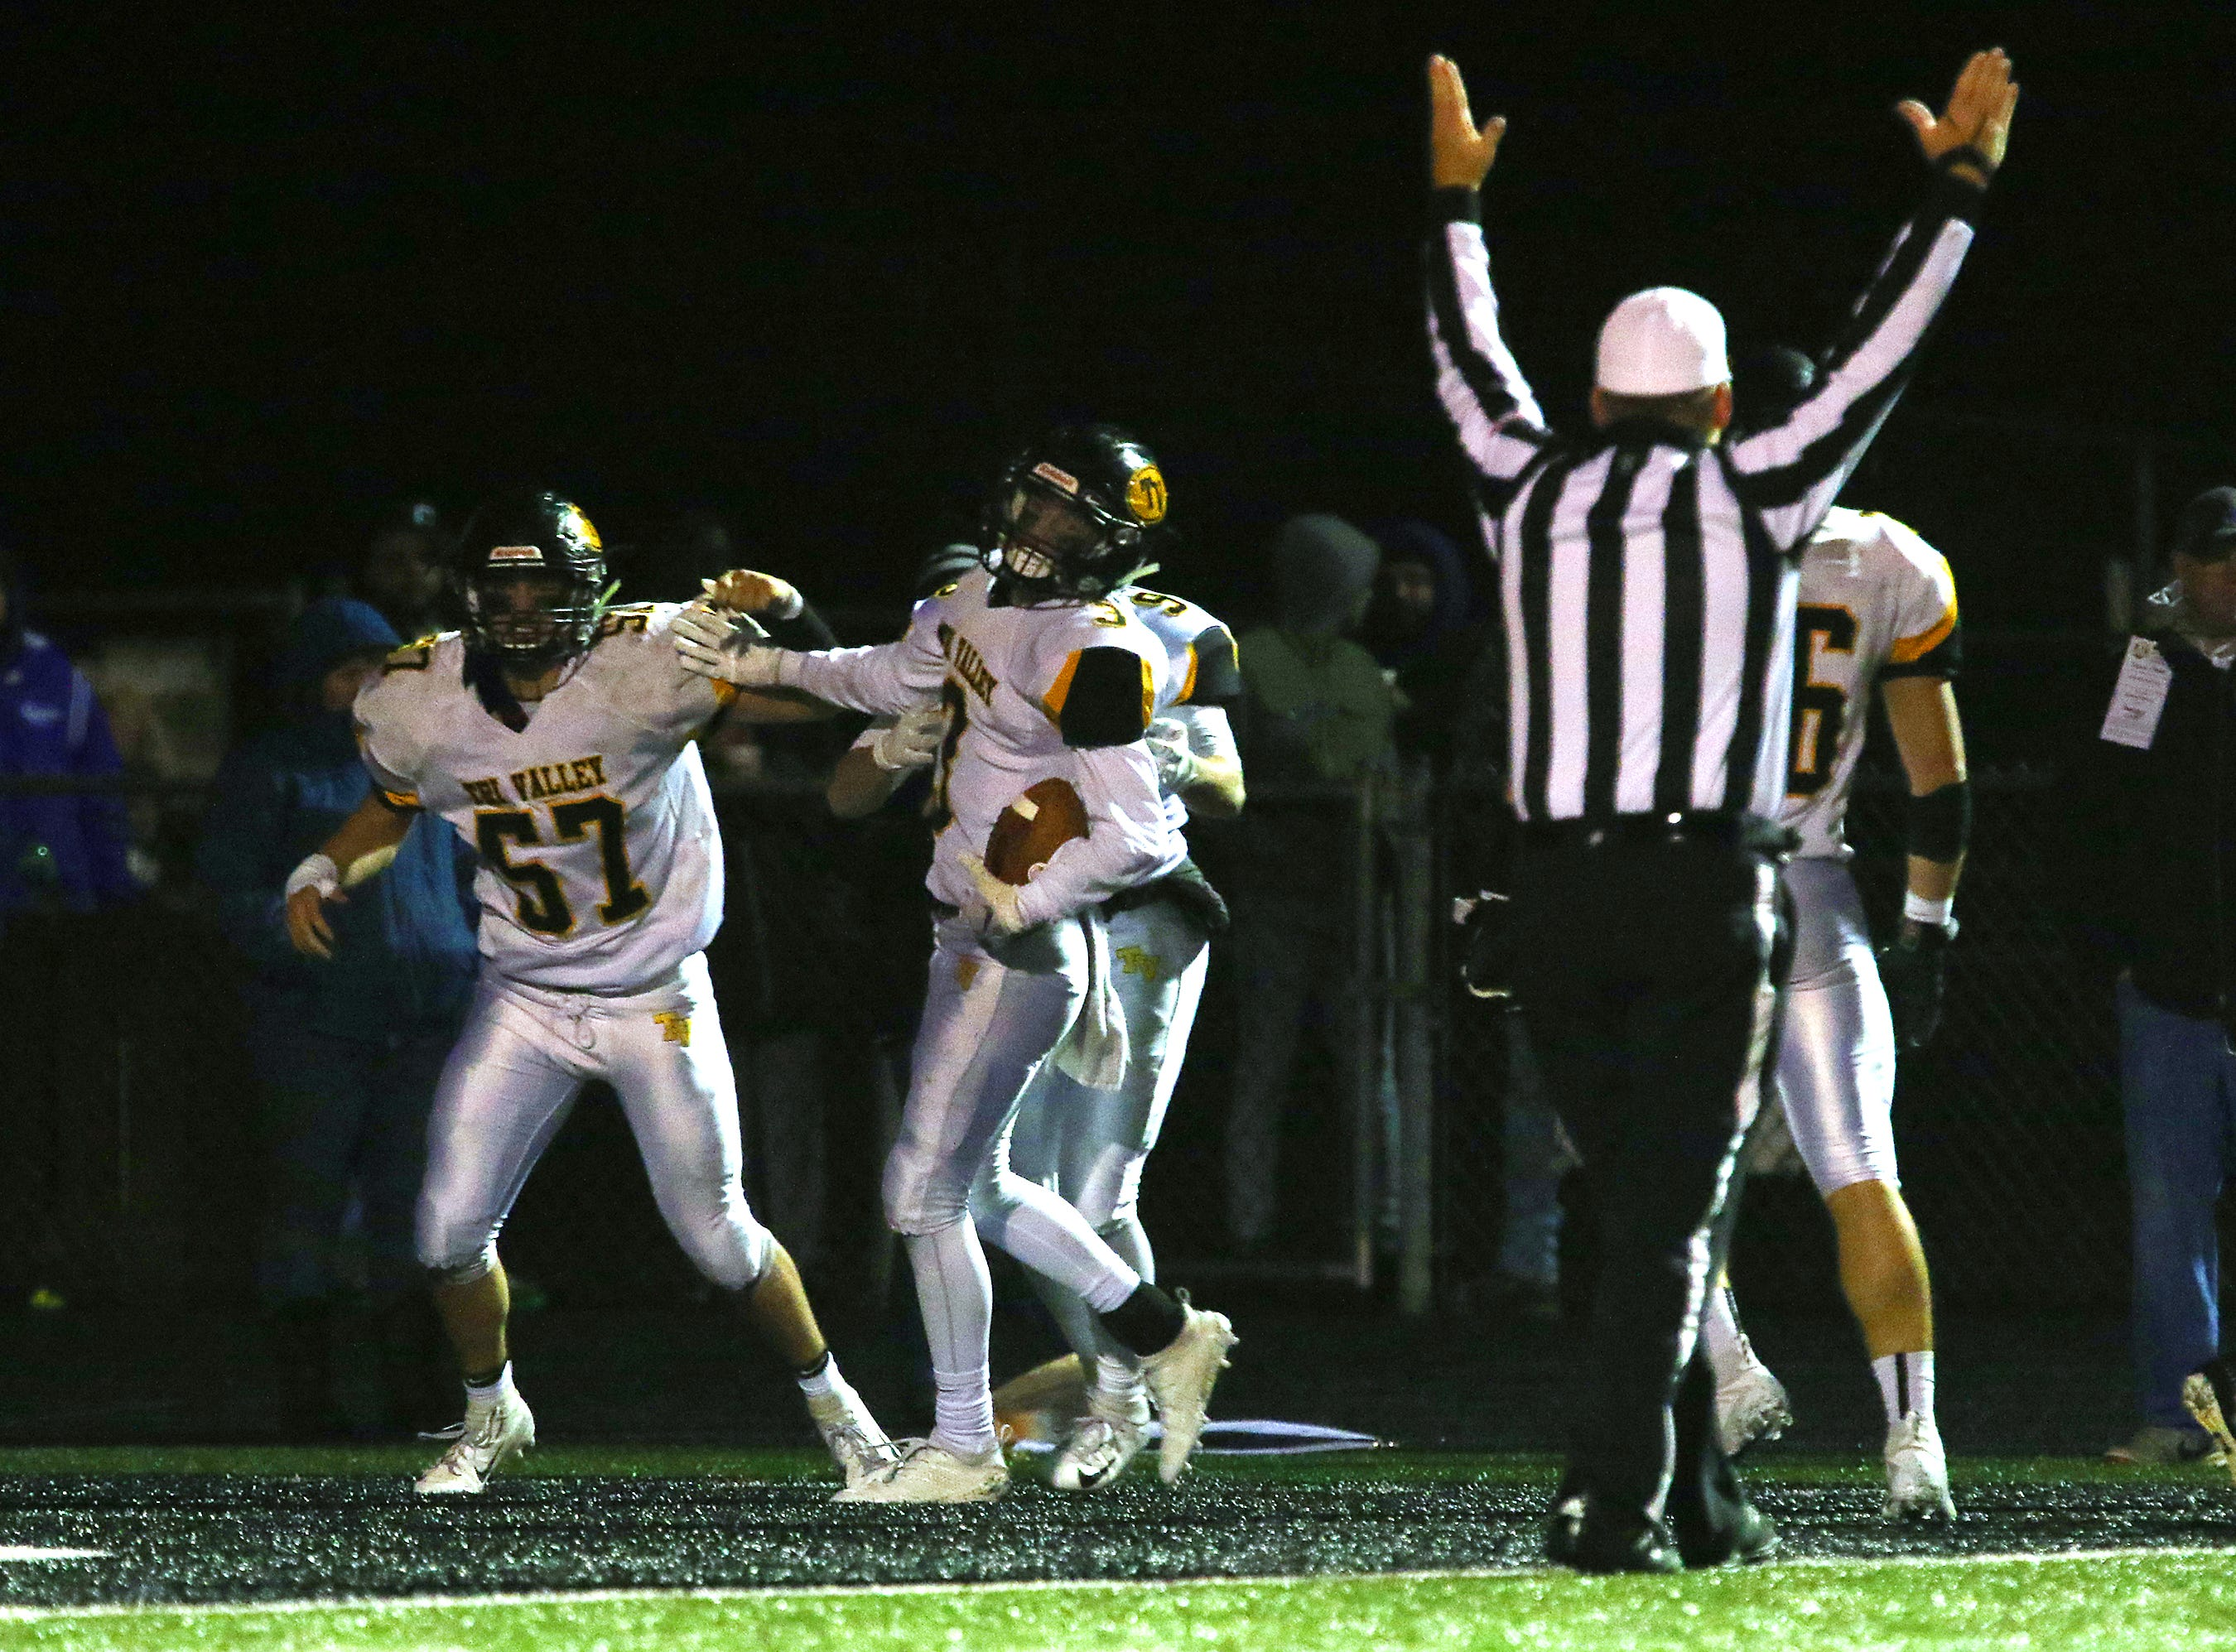 Tri-Valley's Cade Sterling scores a touchdown on an interception return against Barberton.